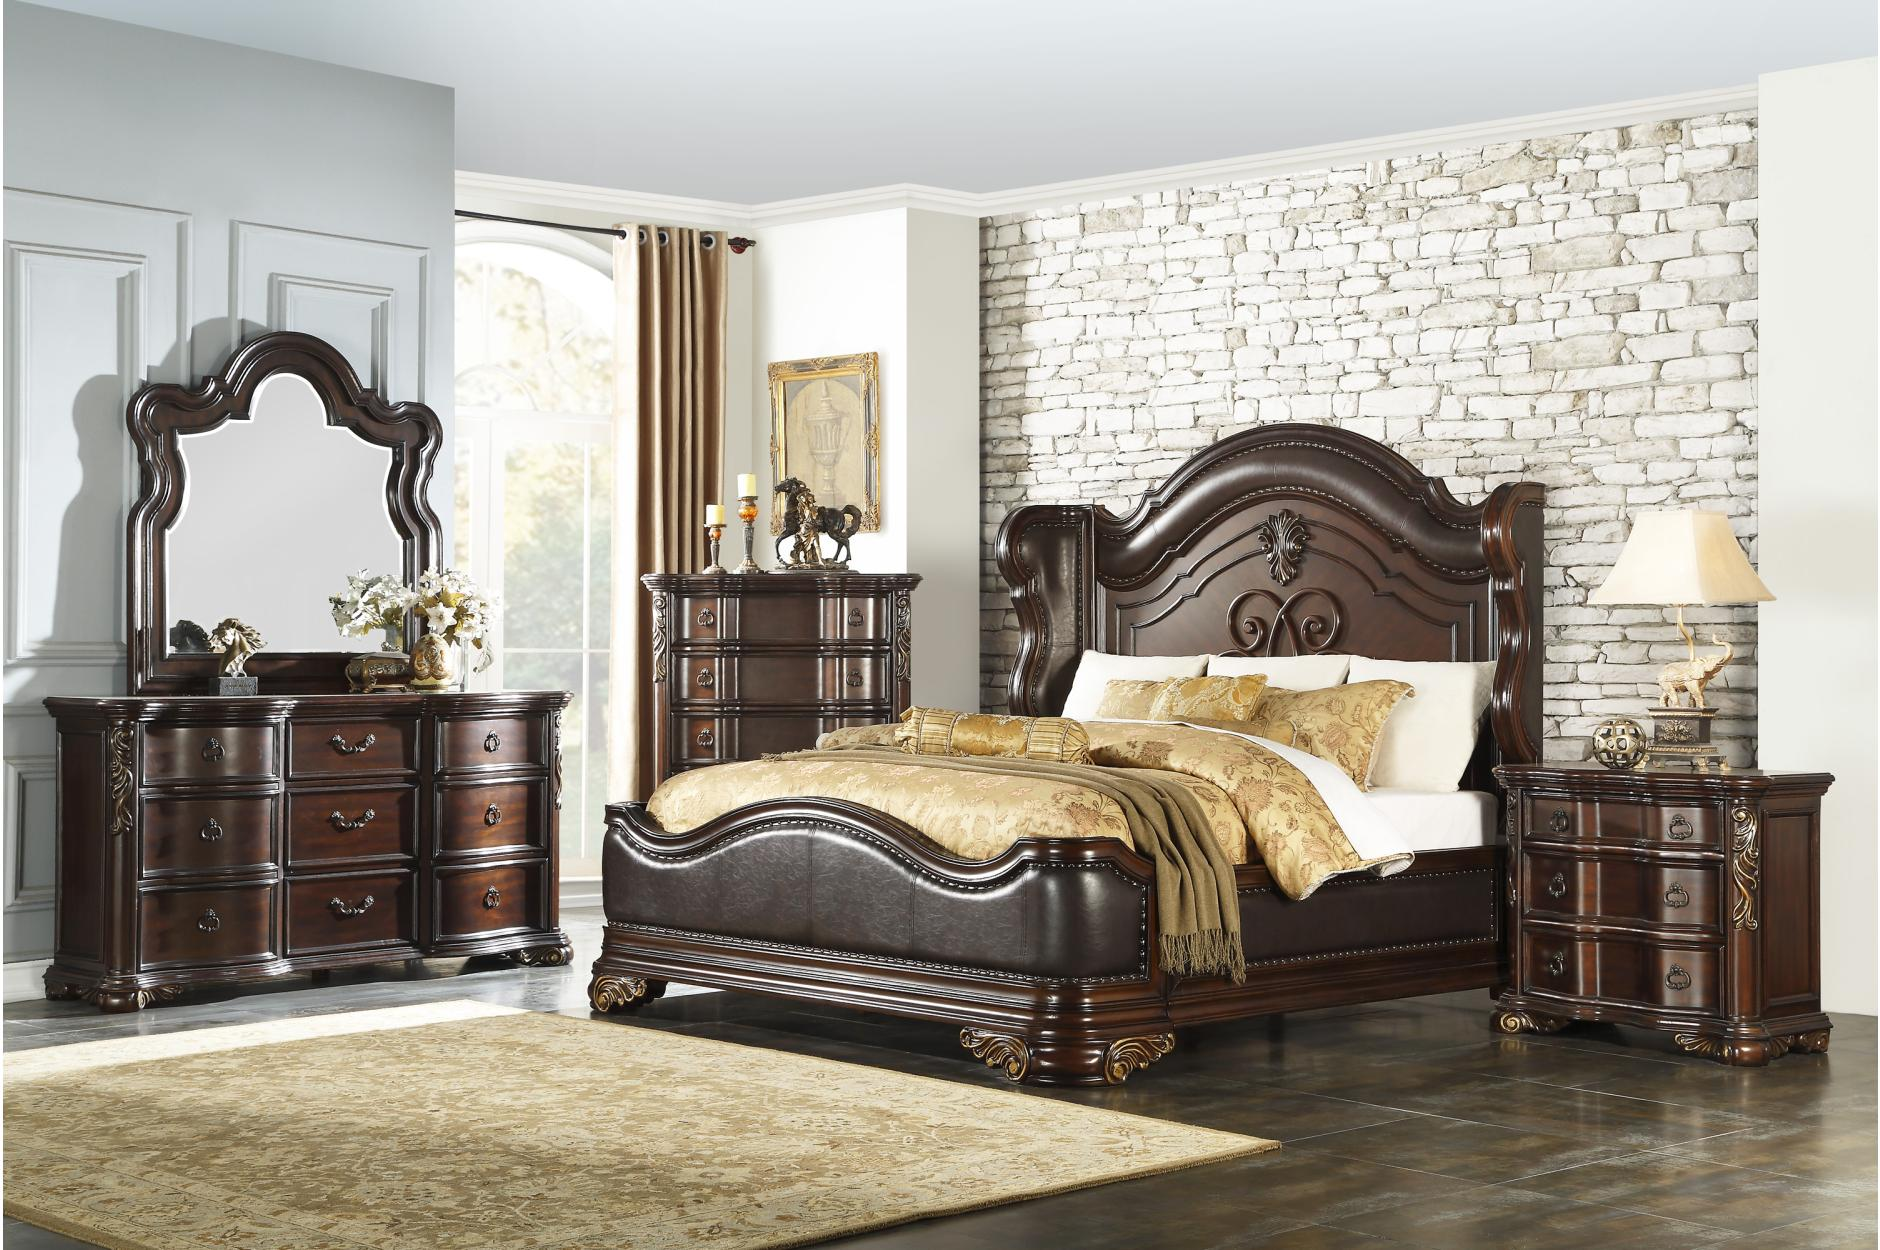 4PC Bedroom Set (Queen Bed, Dresser, Mirror, NS)